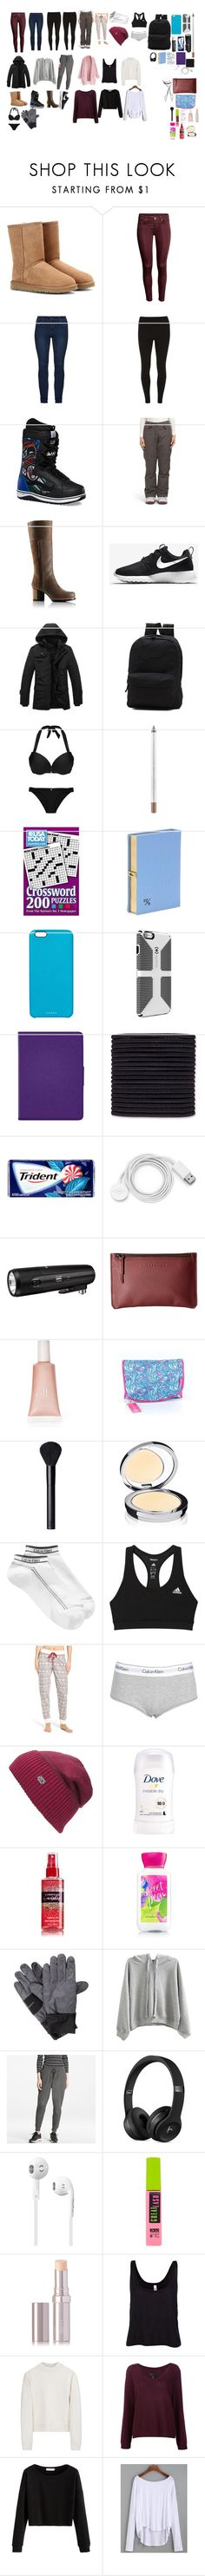 """""""Montana list"""" by izzybellah-1 on Polyvore featuring UGG Australia, Dorothy Perkins, Vans, SOREL, NIKE, Chapstick, Olympia Le-Tan, Chaos, scunci and FOSSIL"""